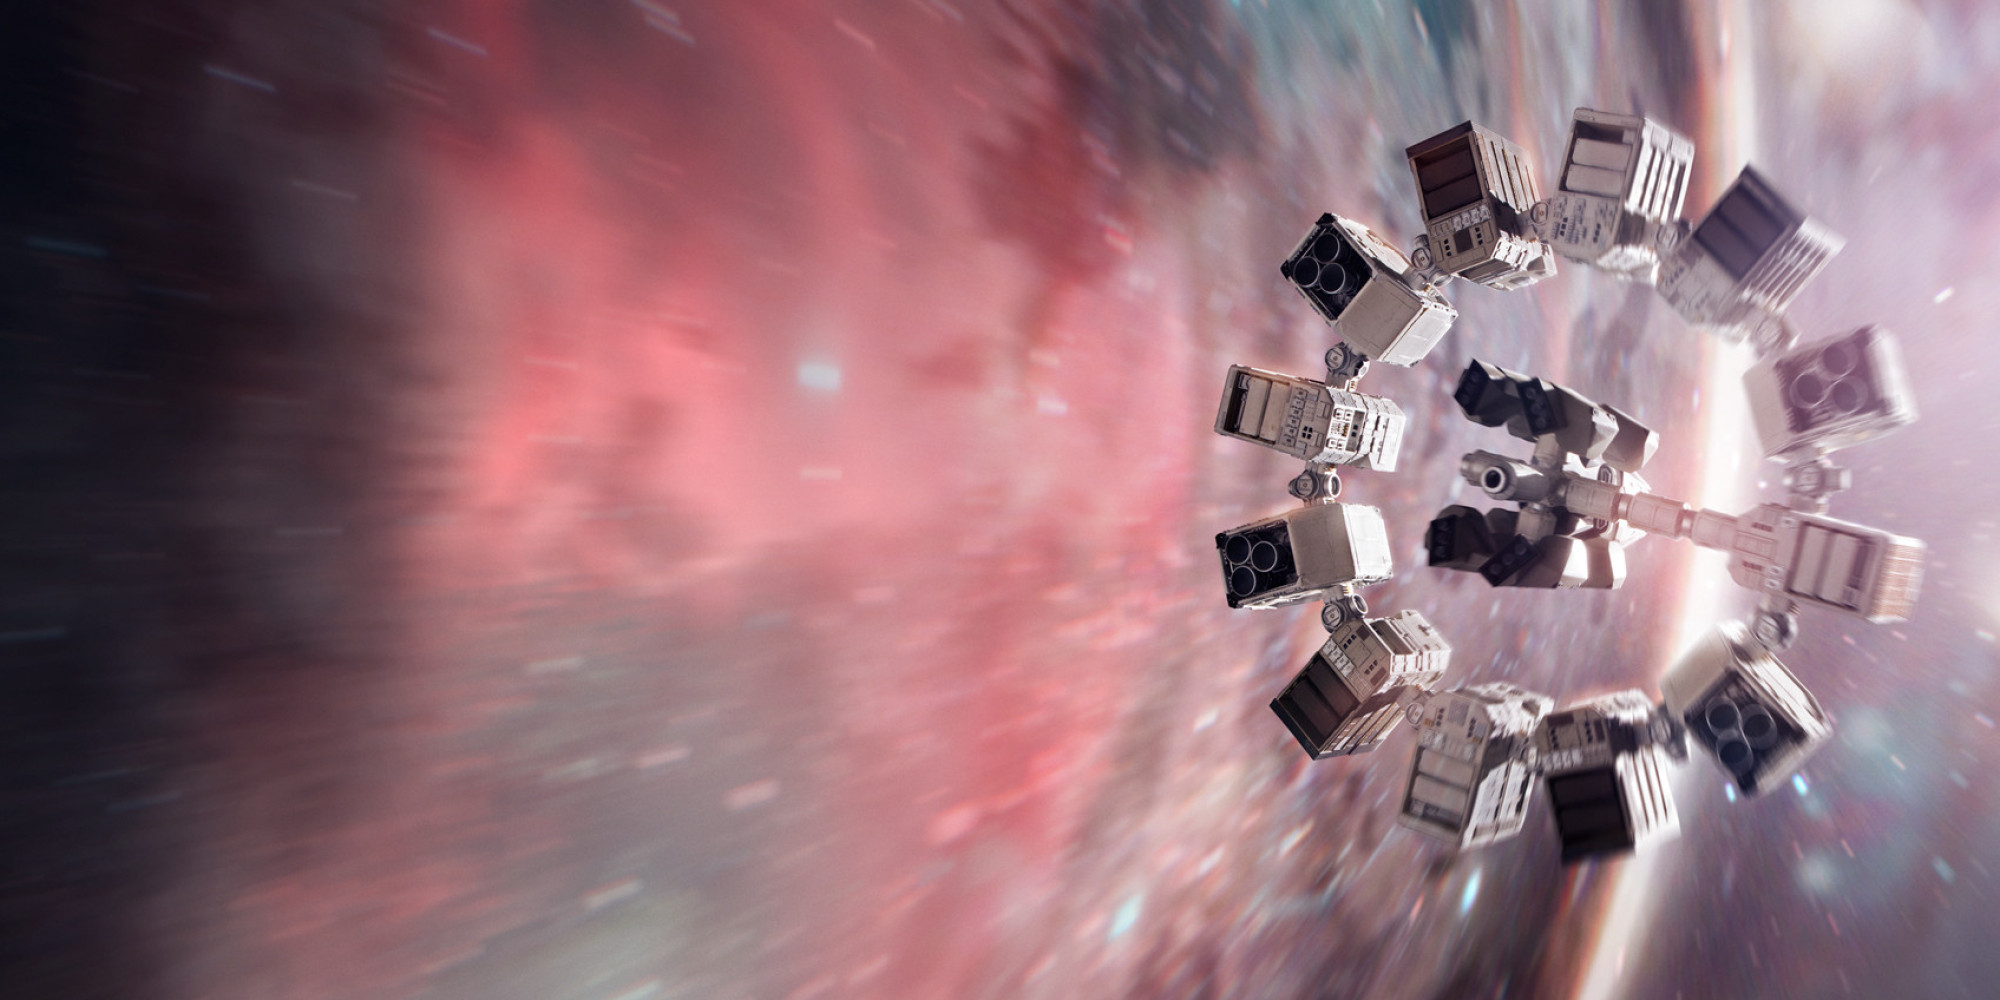 o-INTERSTELLAR-TV-SPOTS-facebook.jpg